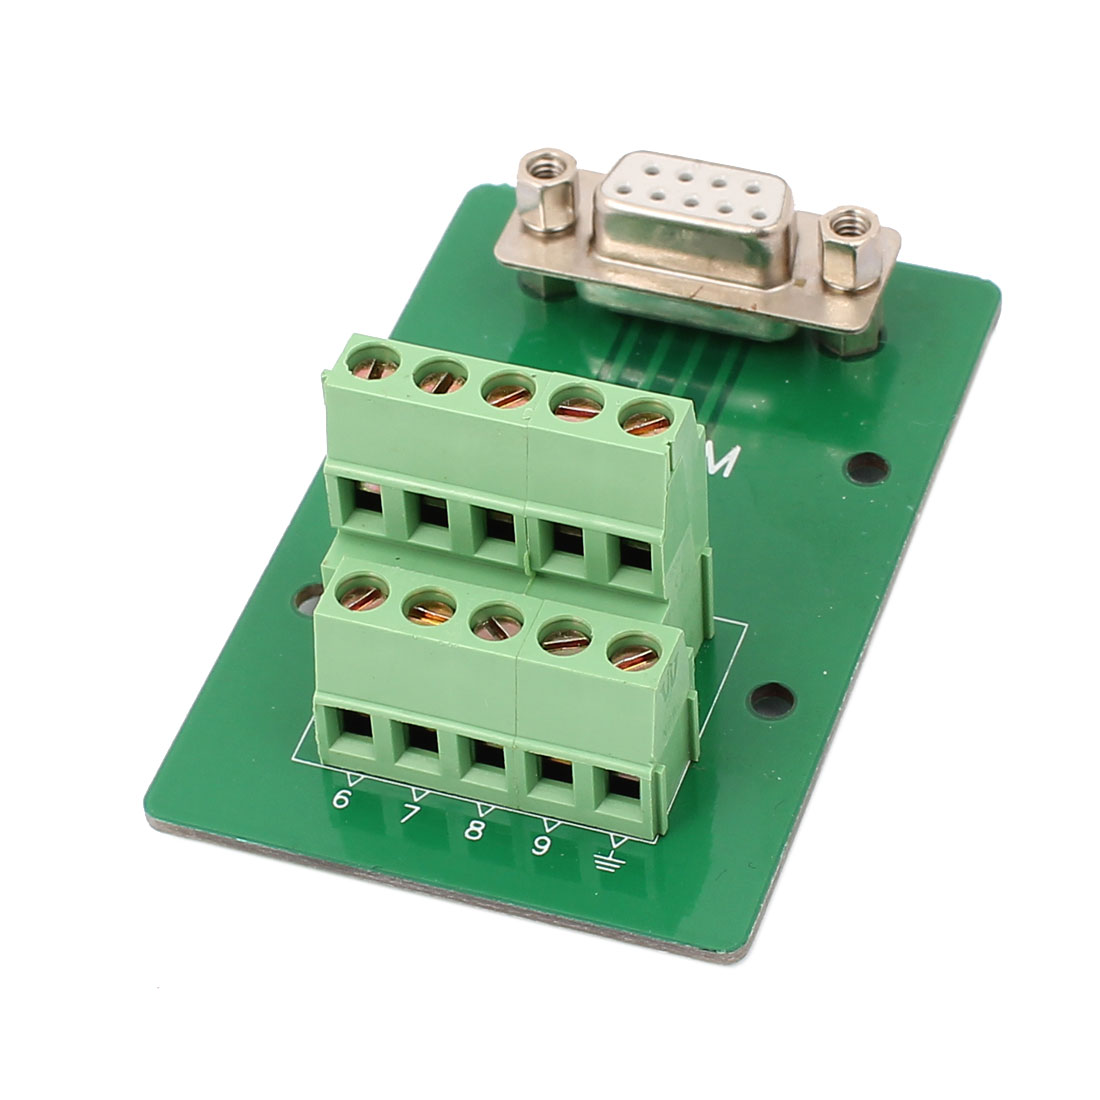 DB9 9 Pin Female Adapter Plate RS232 Serial to Terminal Signal Module - image 2 of 3